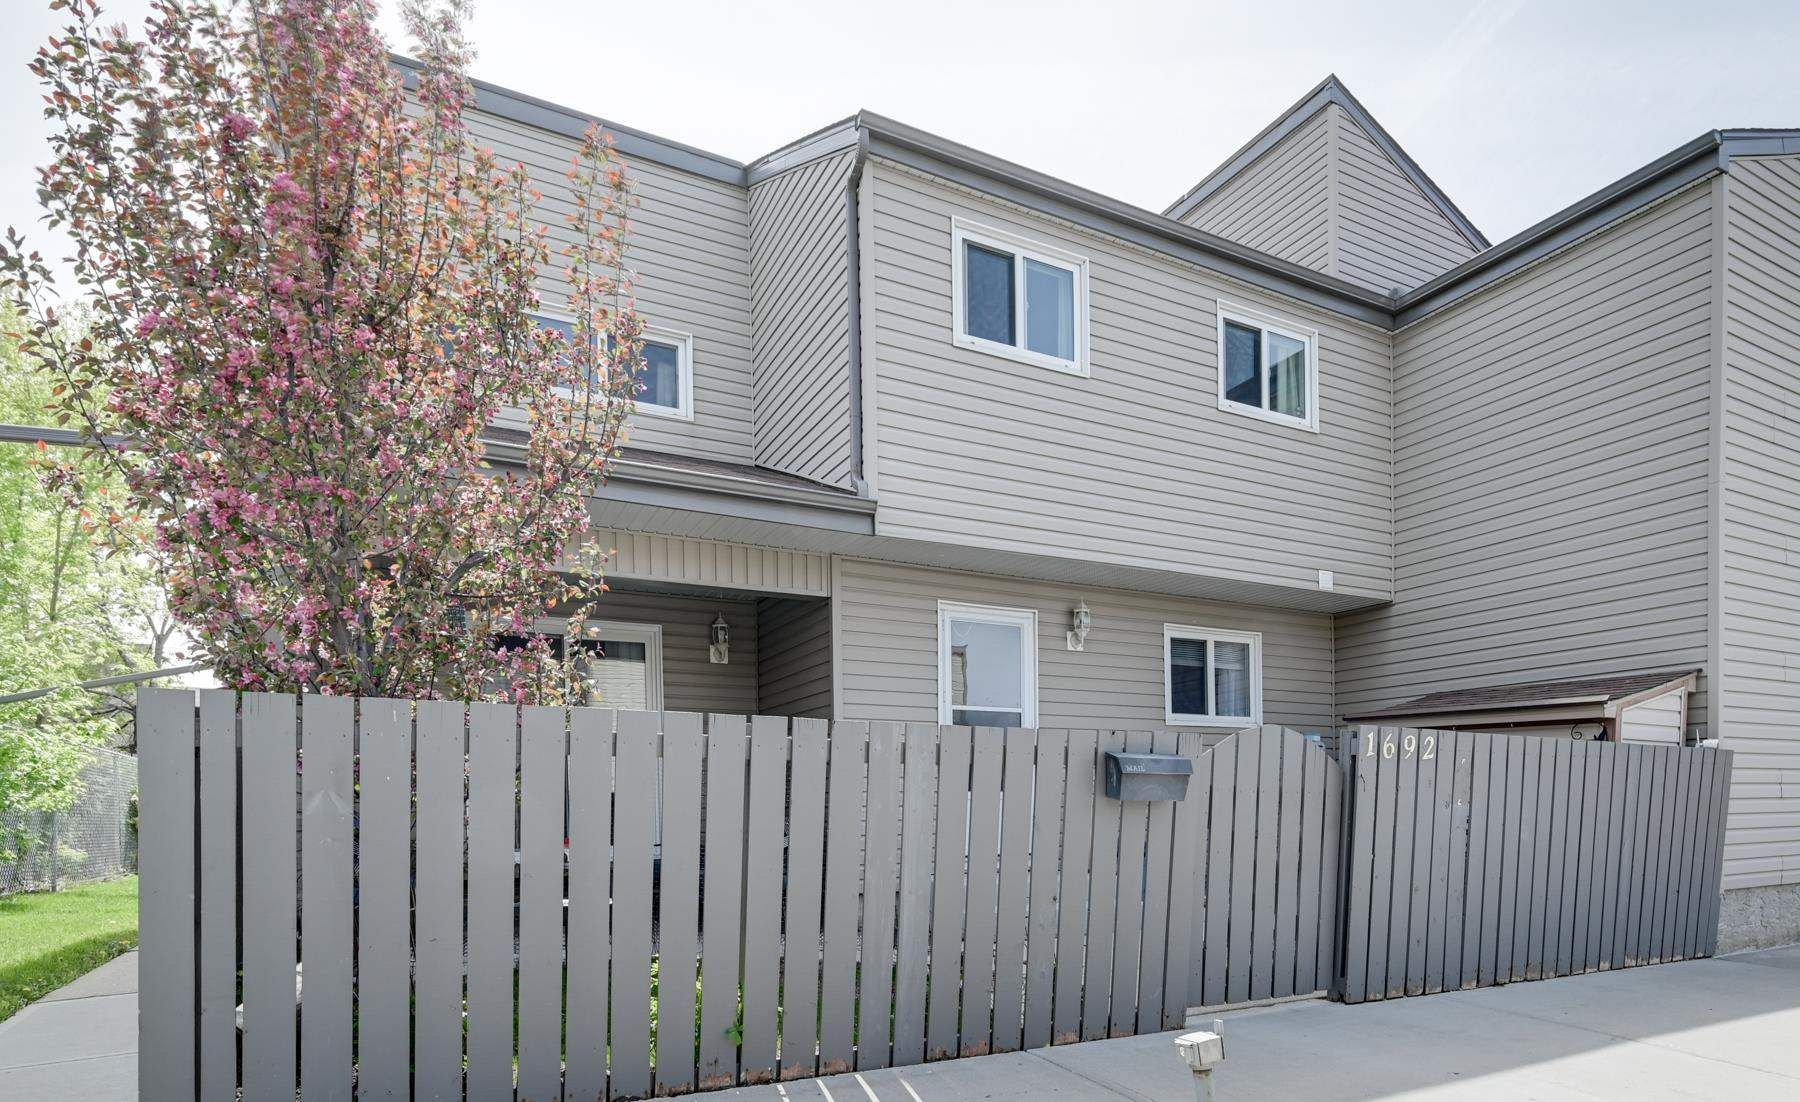 Main Photo: 1692 LAKEWOOD Road S in Edmonton: Zone 29 Townhouse for sale : MLS®# E4248367